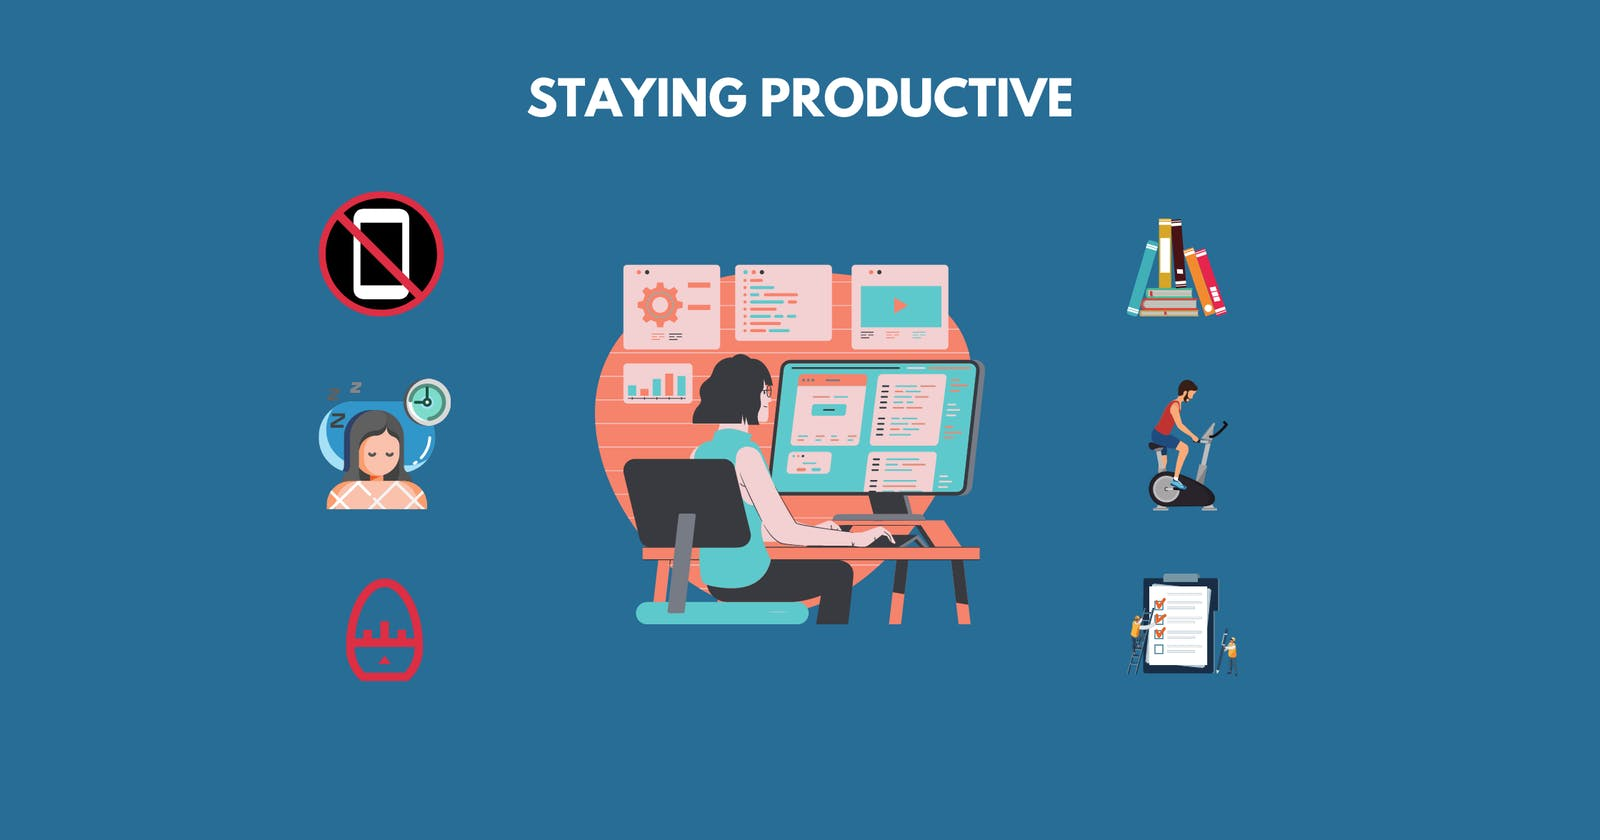 7 Things I do to stay productive while Working from Home